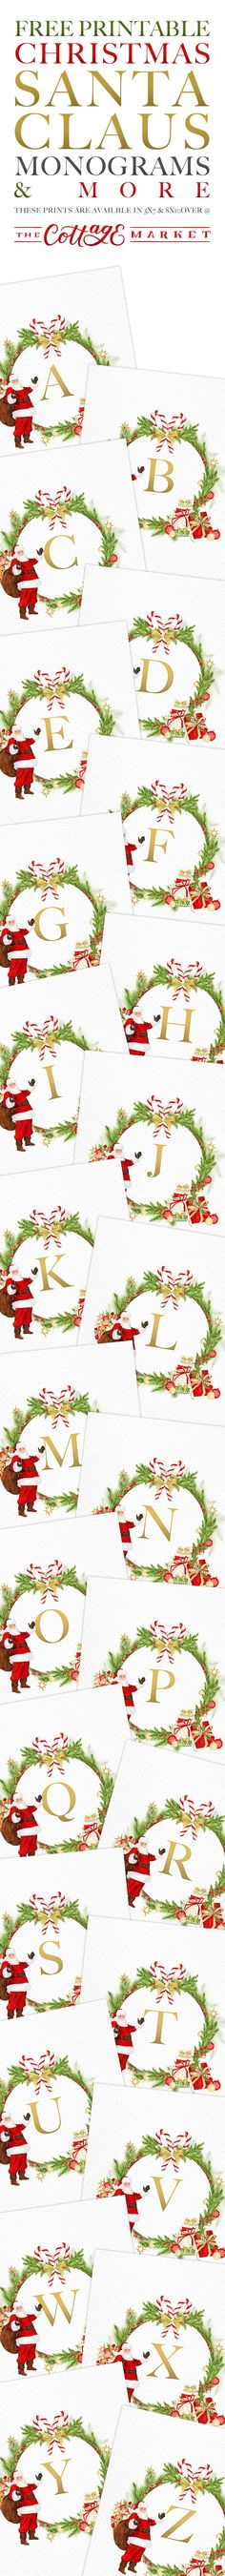 Free Printable Christmas Santa Claus Monograms and More